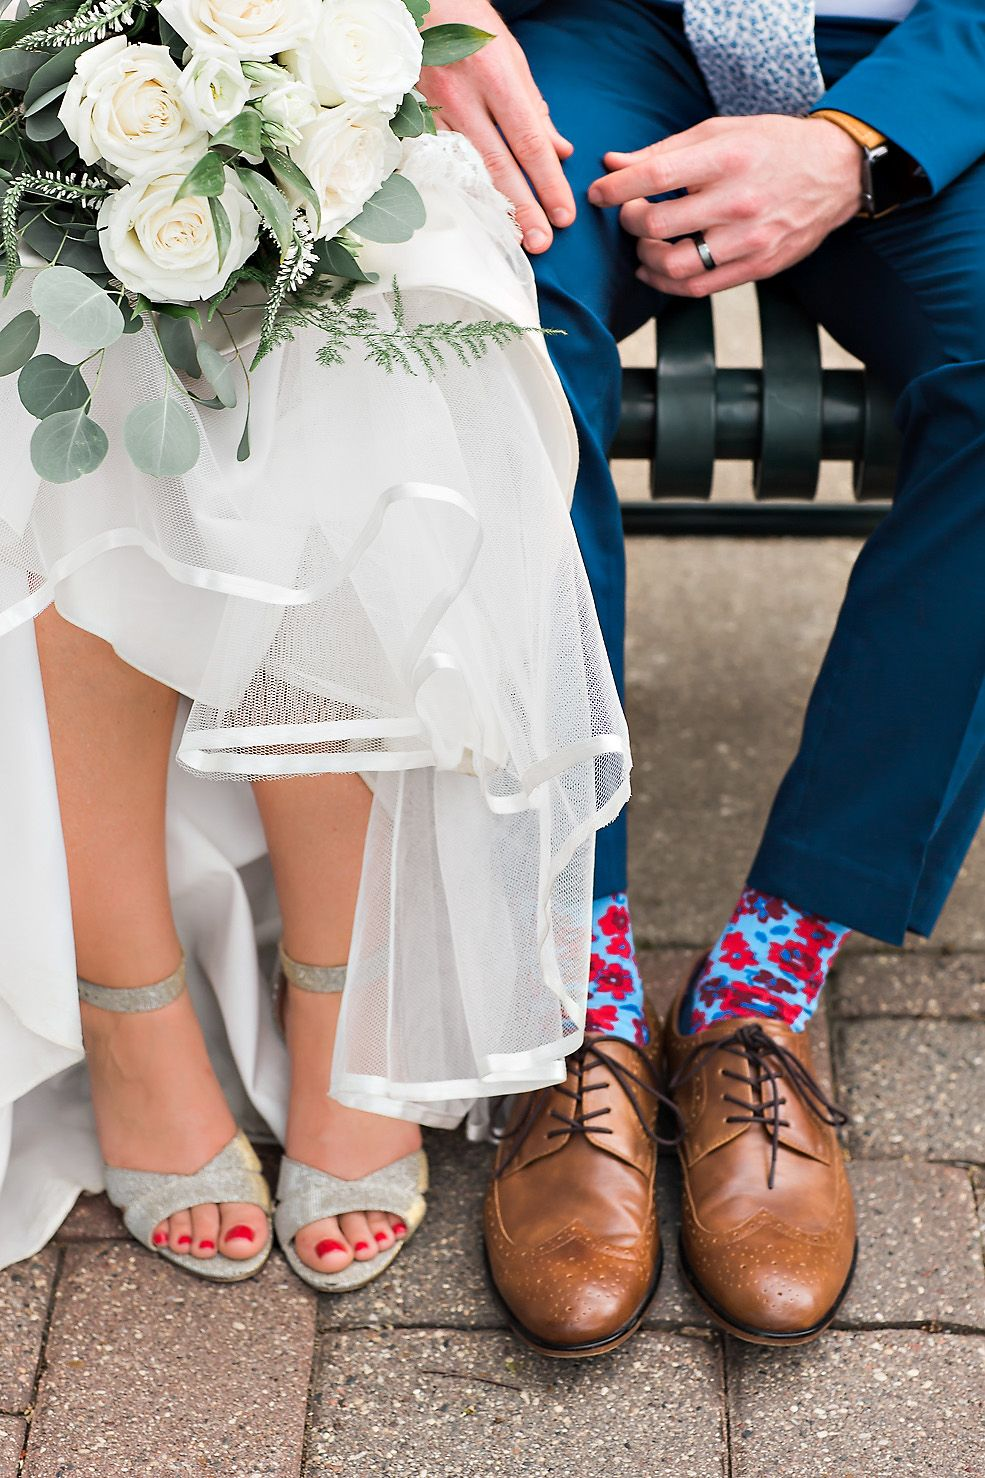 Cute Wedding Shoes Love Their Details By Tiffany Brubaker